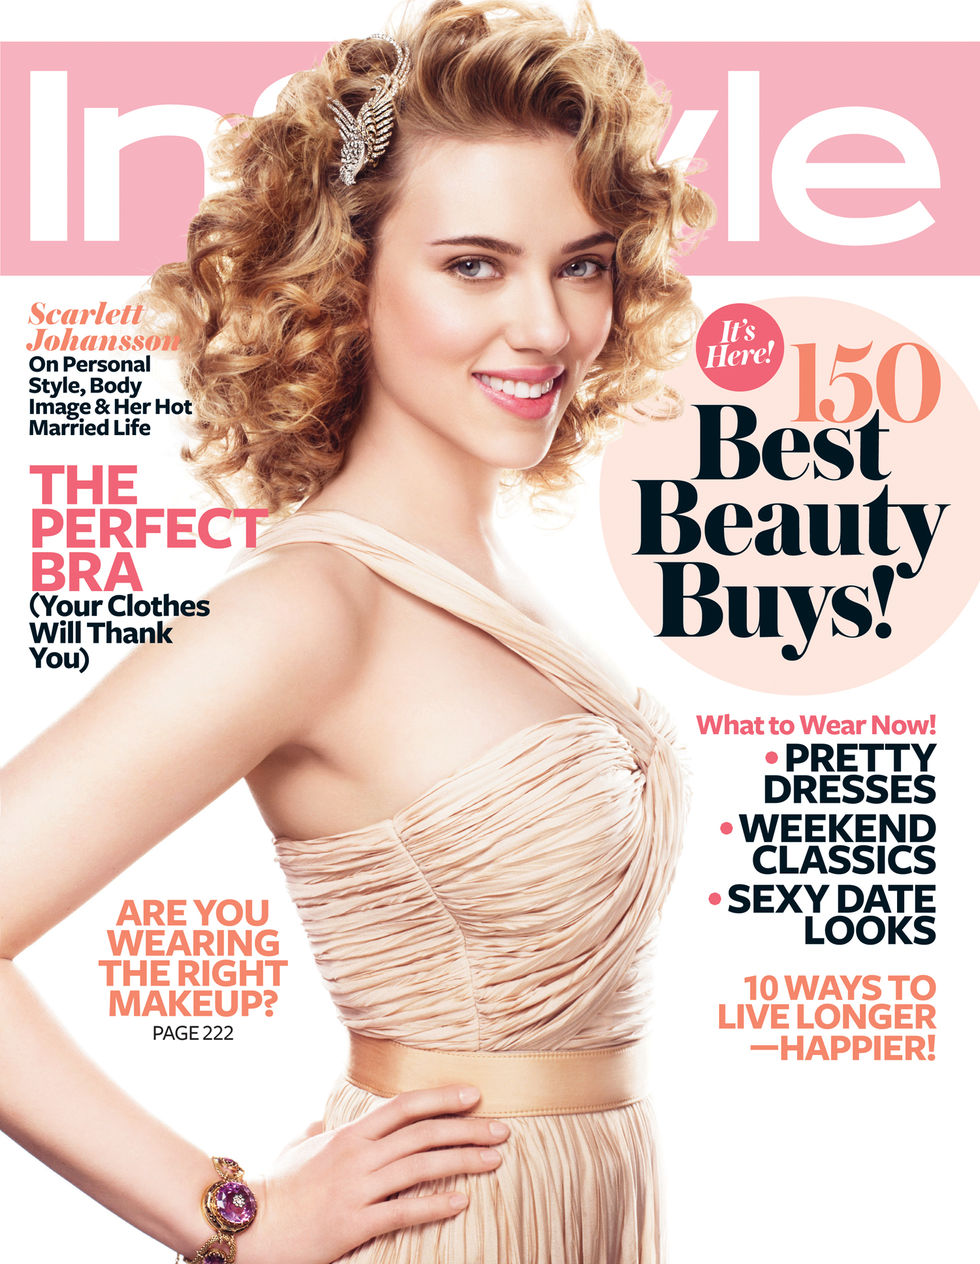 Instyle Magazine Us: Scarlett-johansson-on-cover-instyle-magazine-may-2010-01